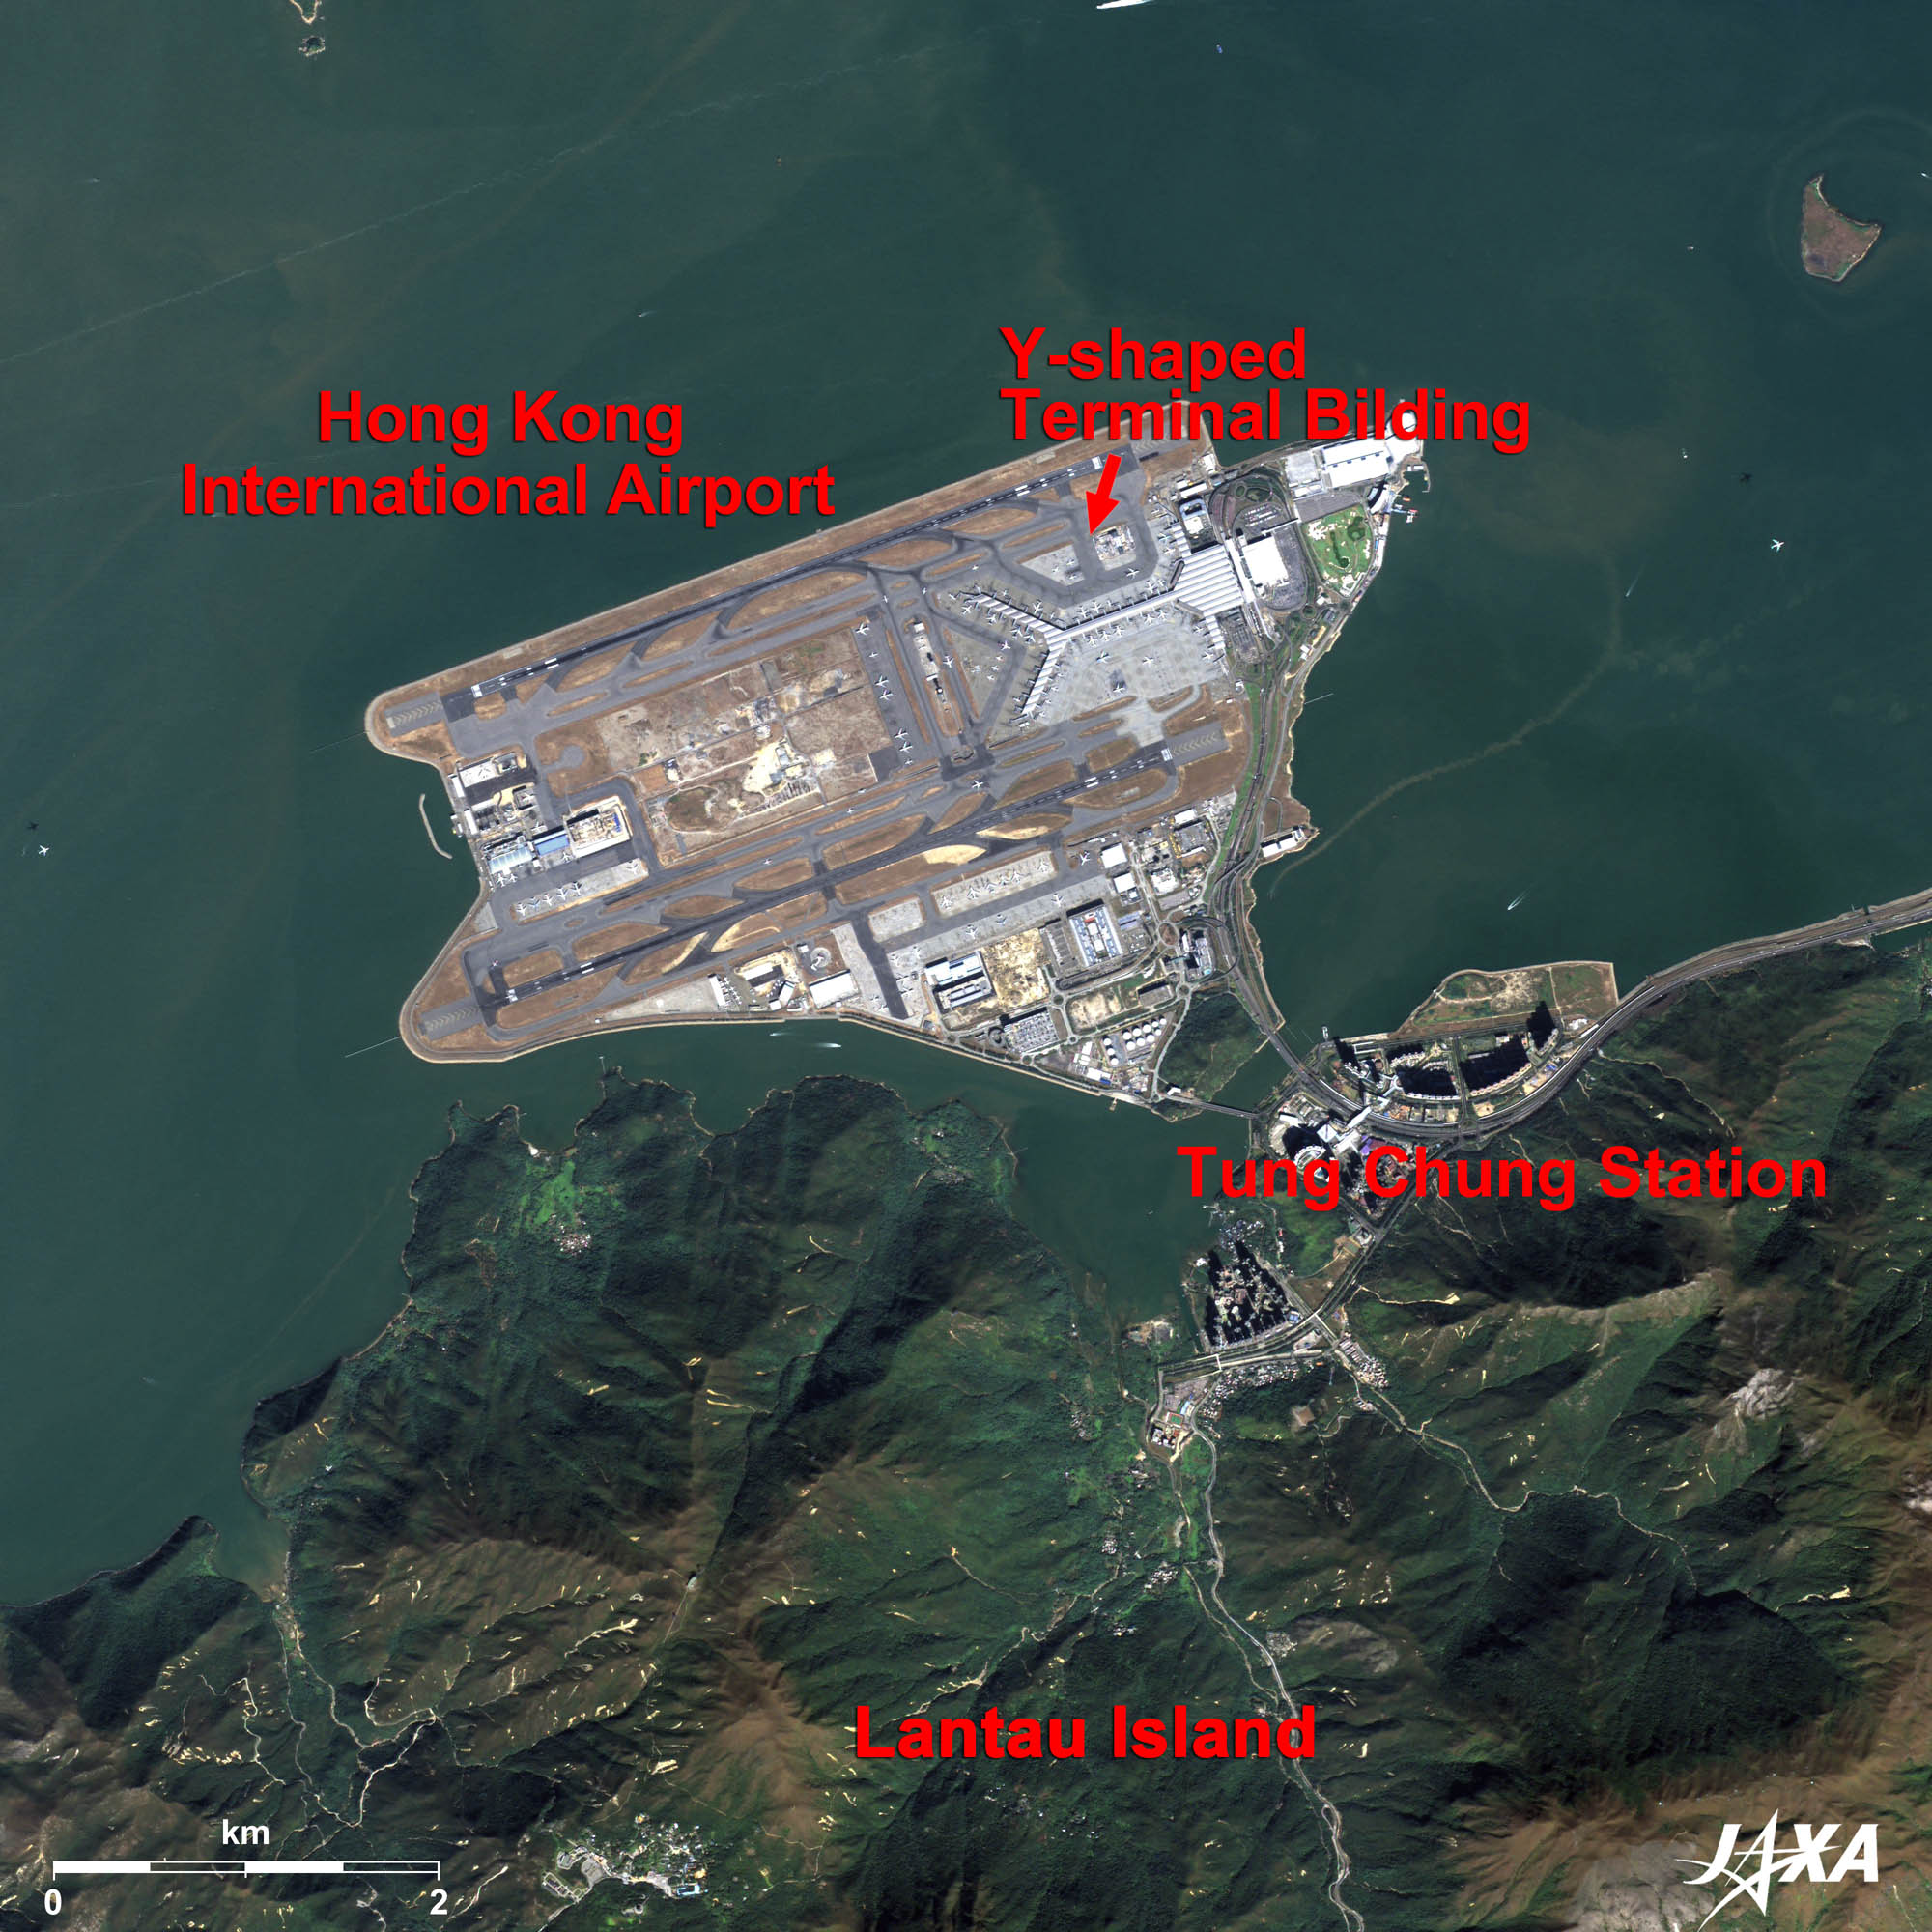 New airports in asia 2010 jaxa earth observation research center hong kong international airport kmz 355 mb low resolution as seen on google earth gumiabroncs Images